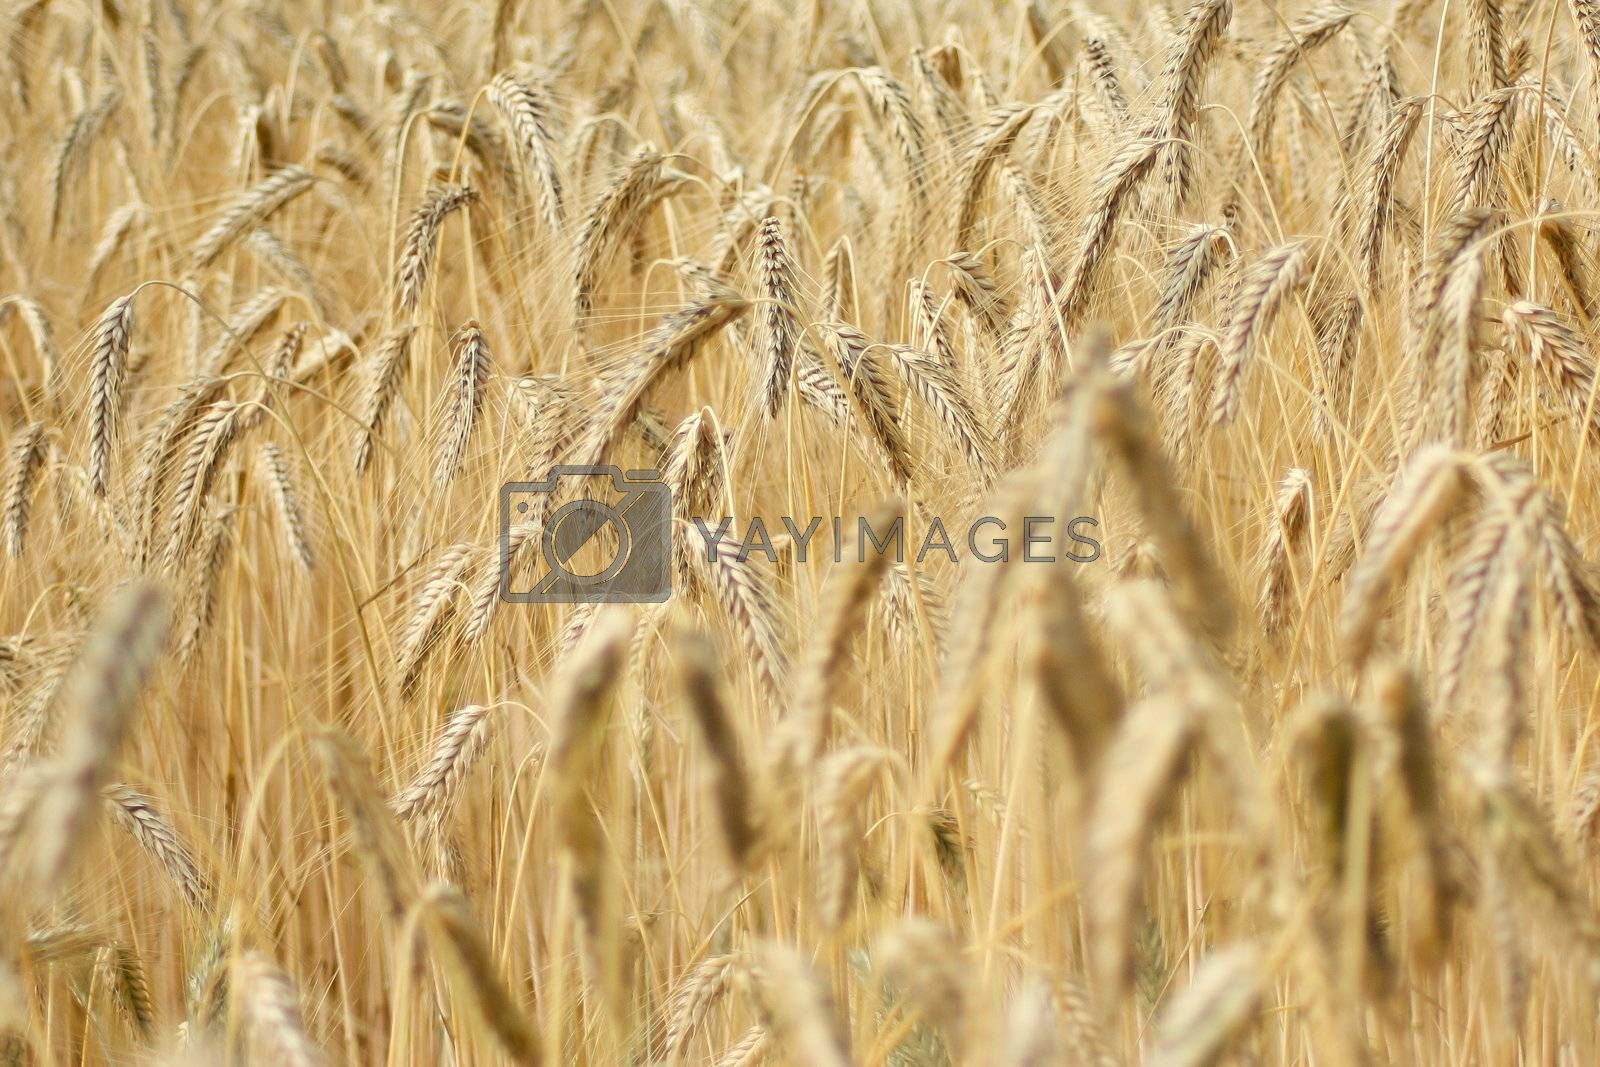 A large field of wheat in France